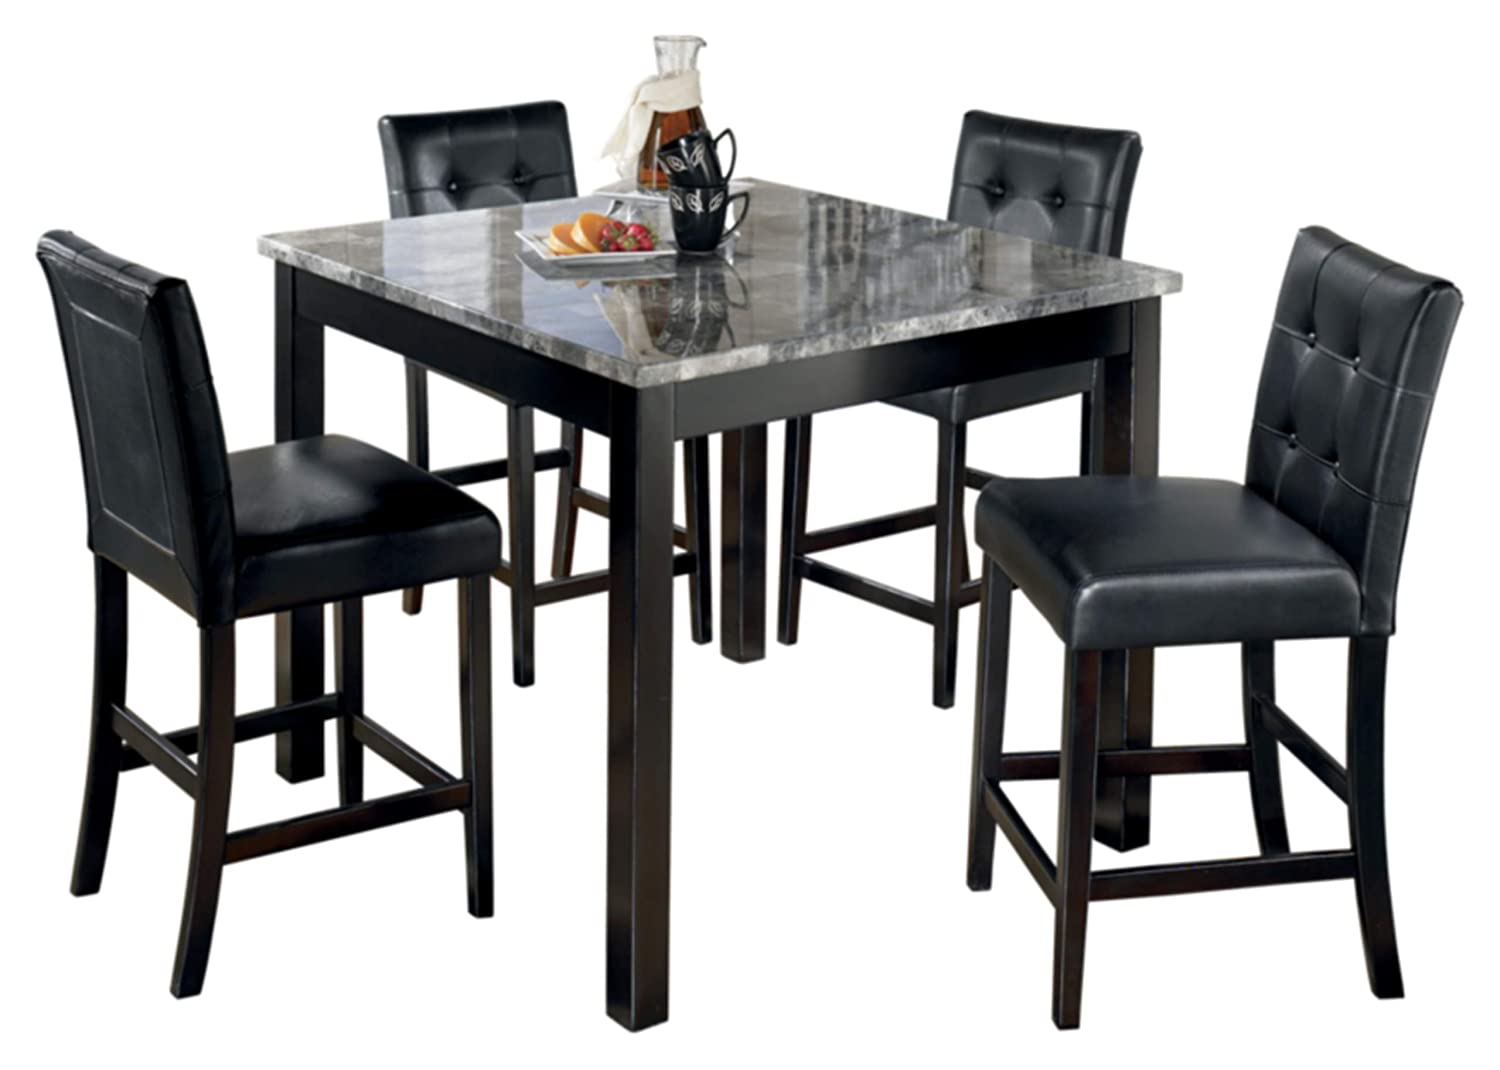 Amazon com ashley furniture signature design maysville counter height dining room set 1 table and 4 barstools contemporary set of 5 black